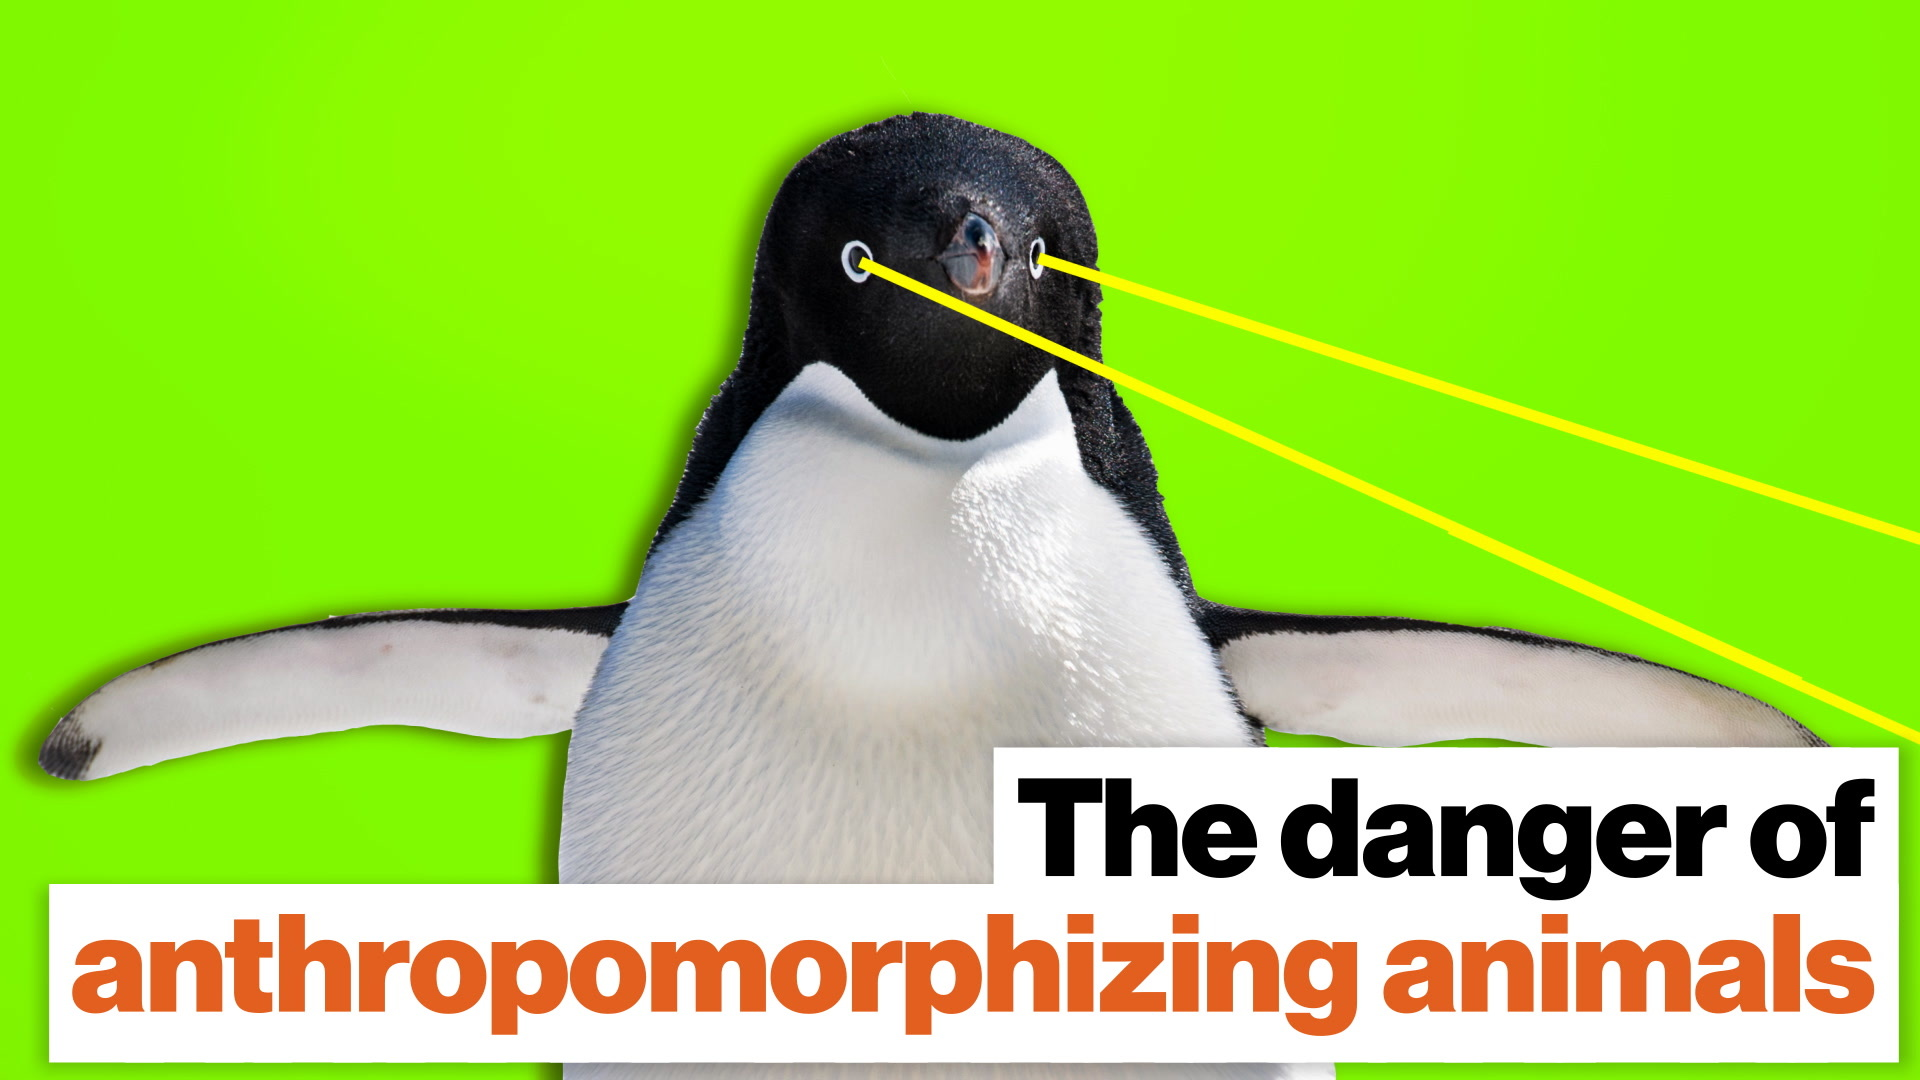 Dead penguin sex: The reason you should't anthropomorphize animals